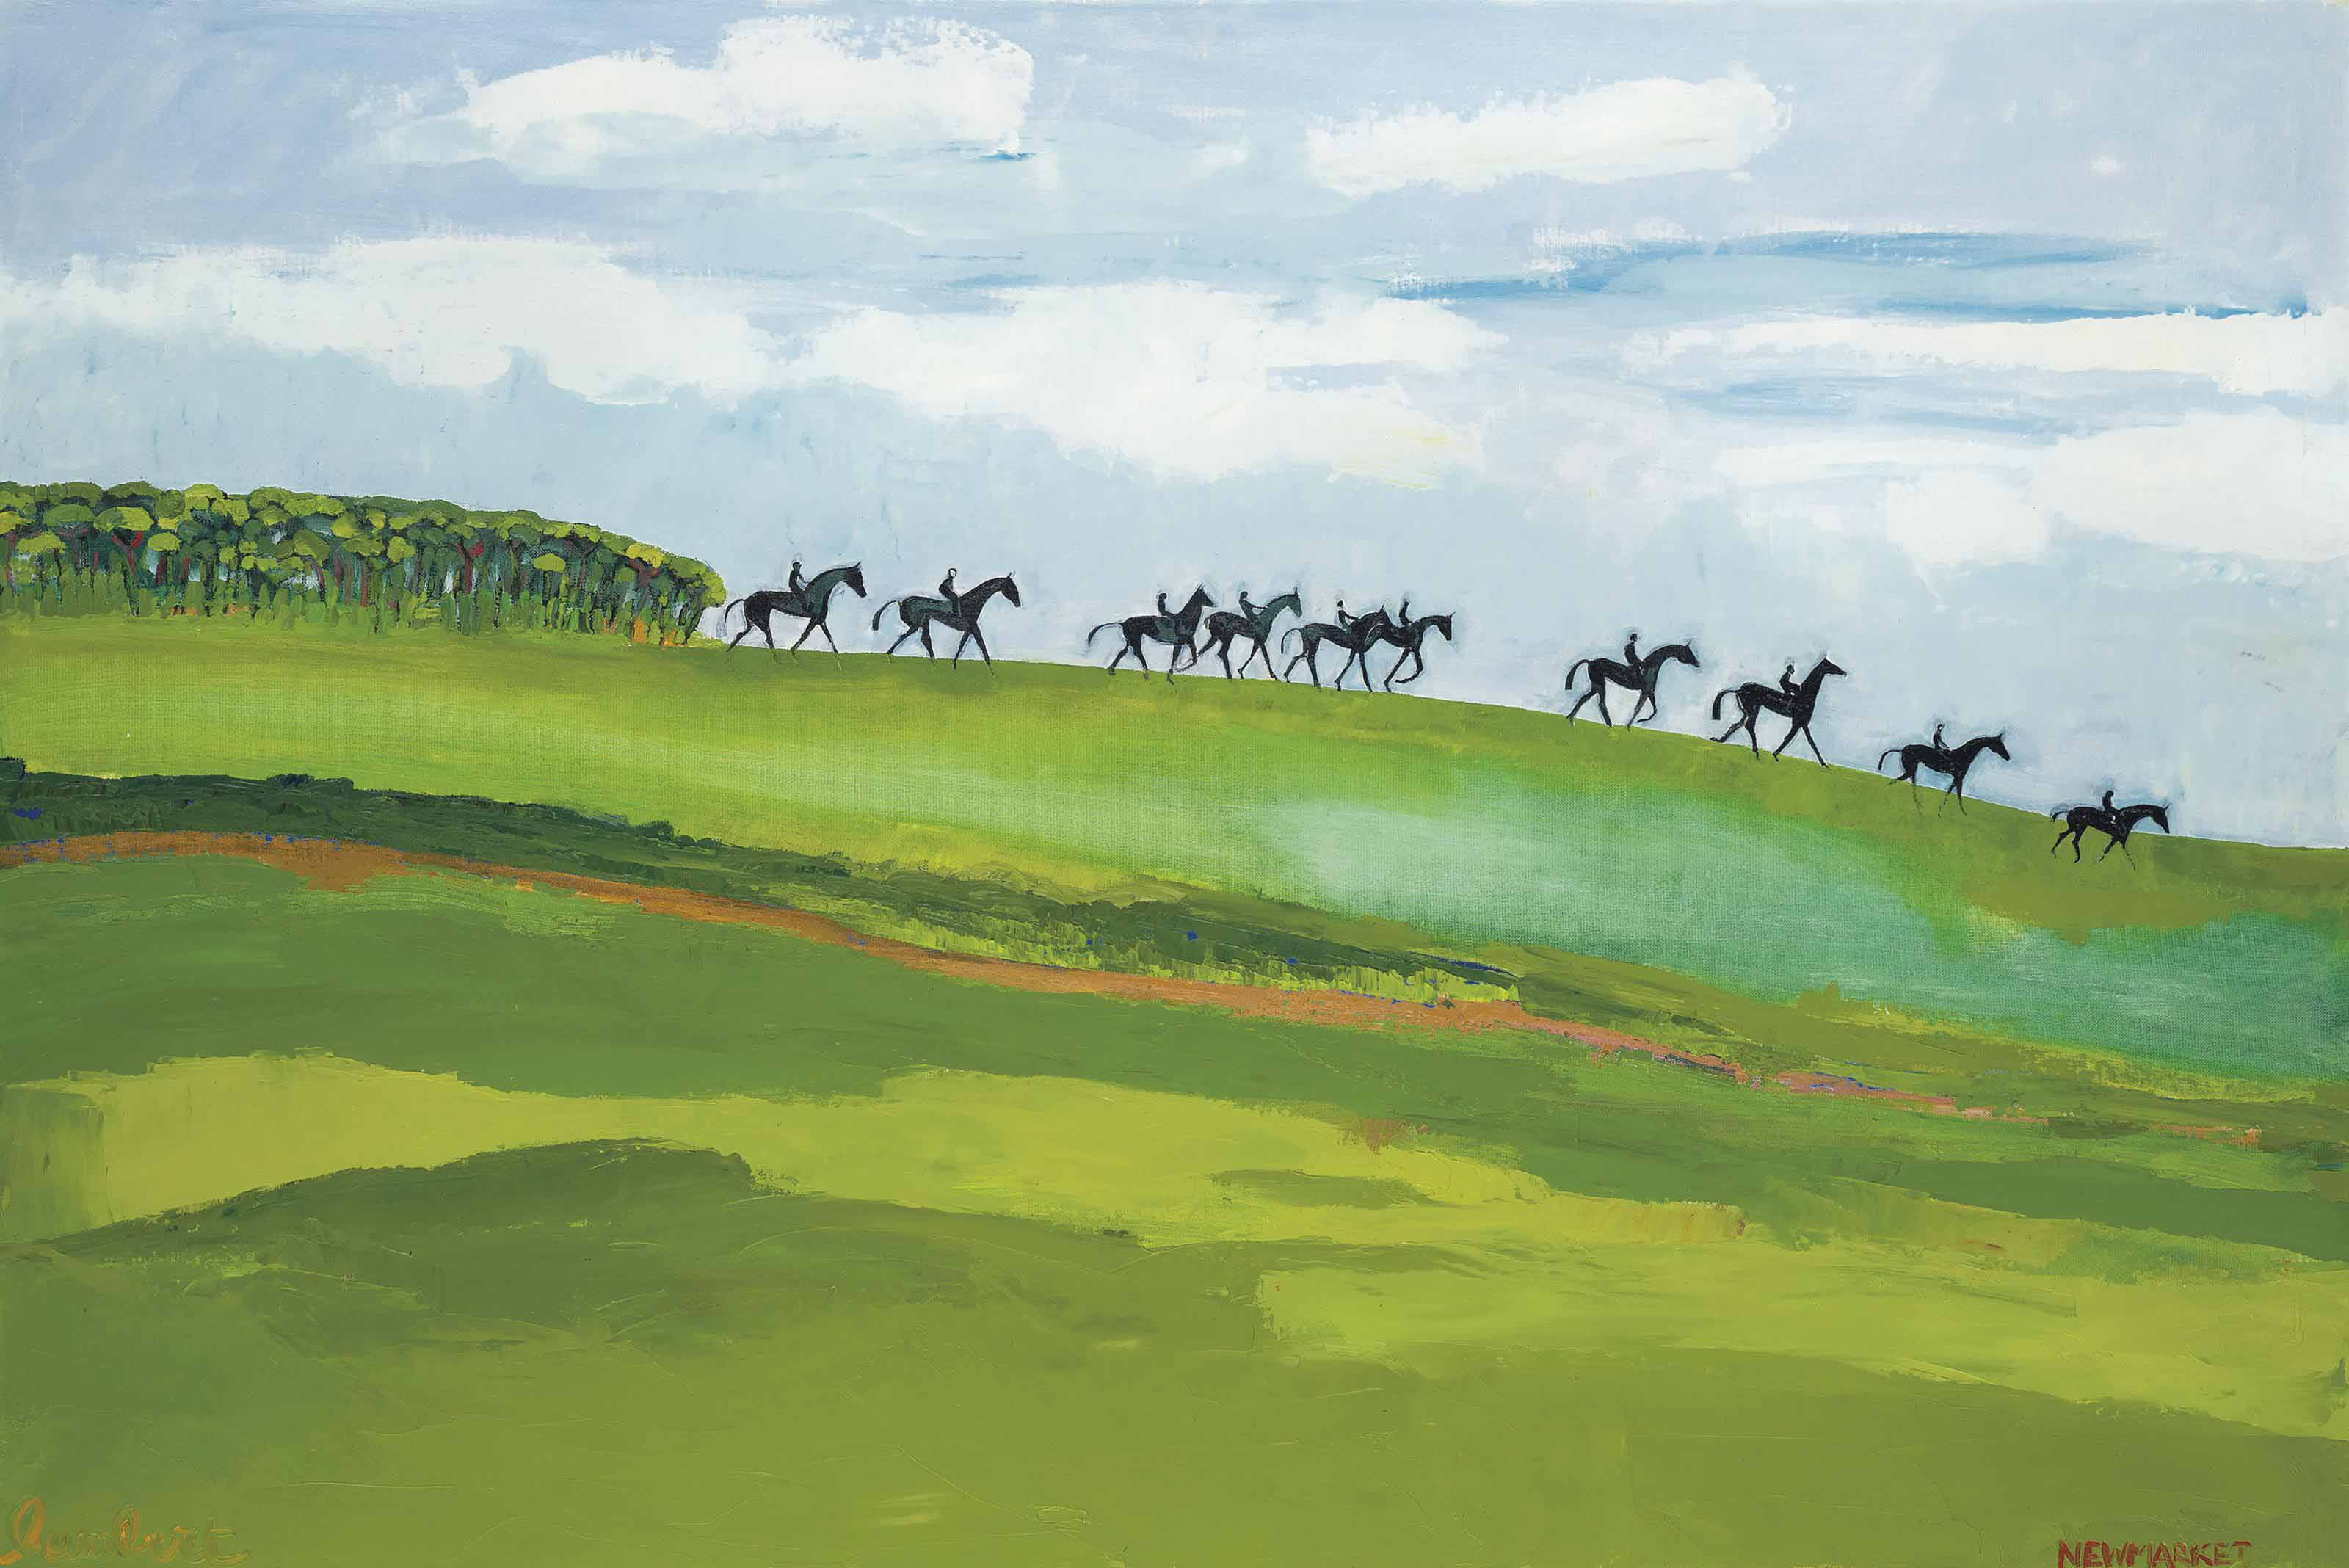 Going down to the gallops, Newmarket